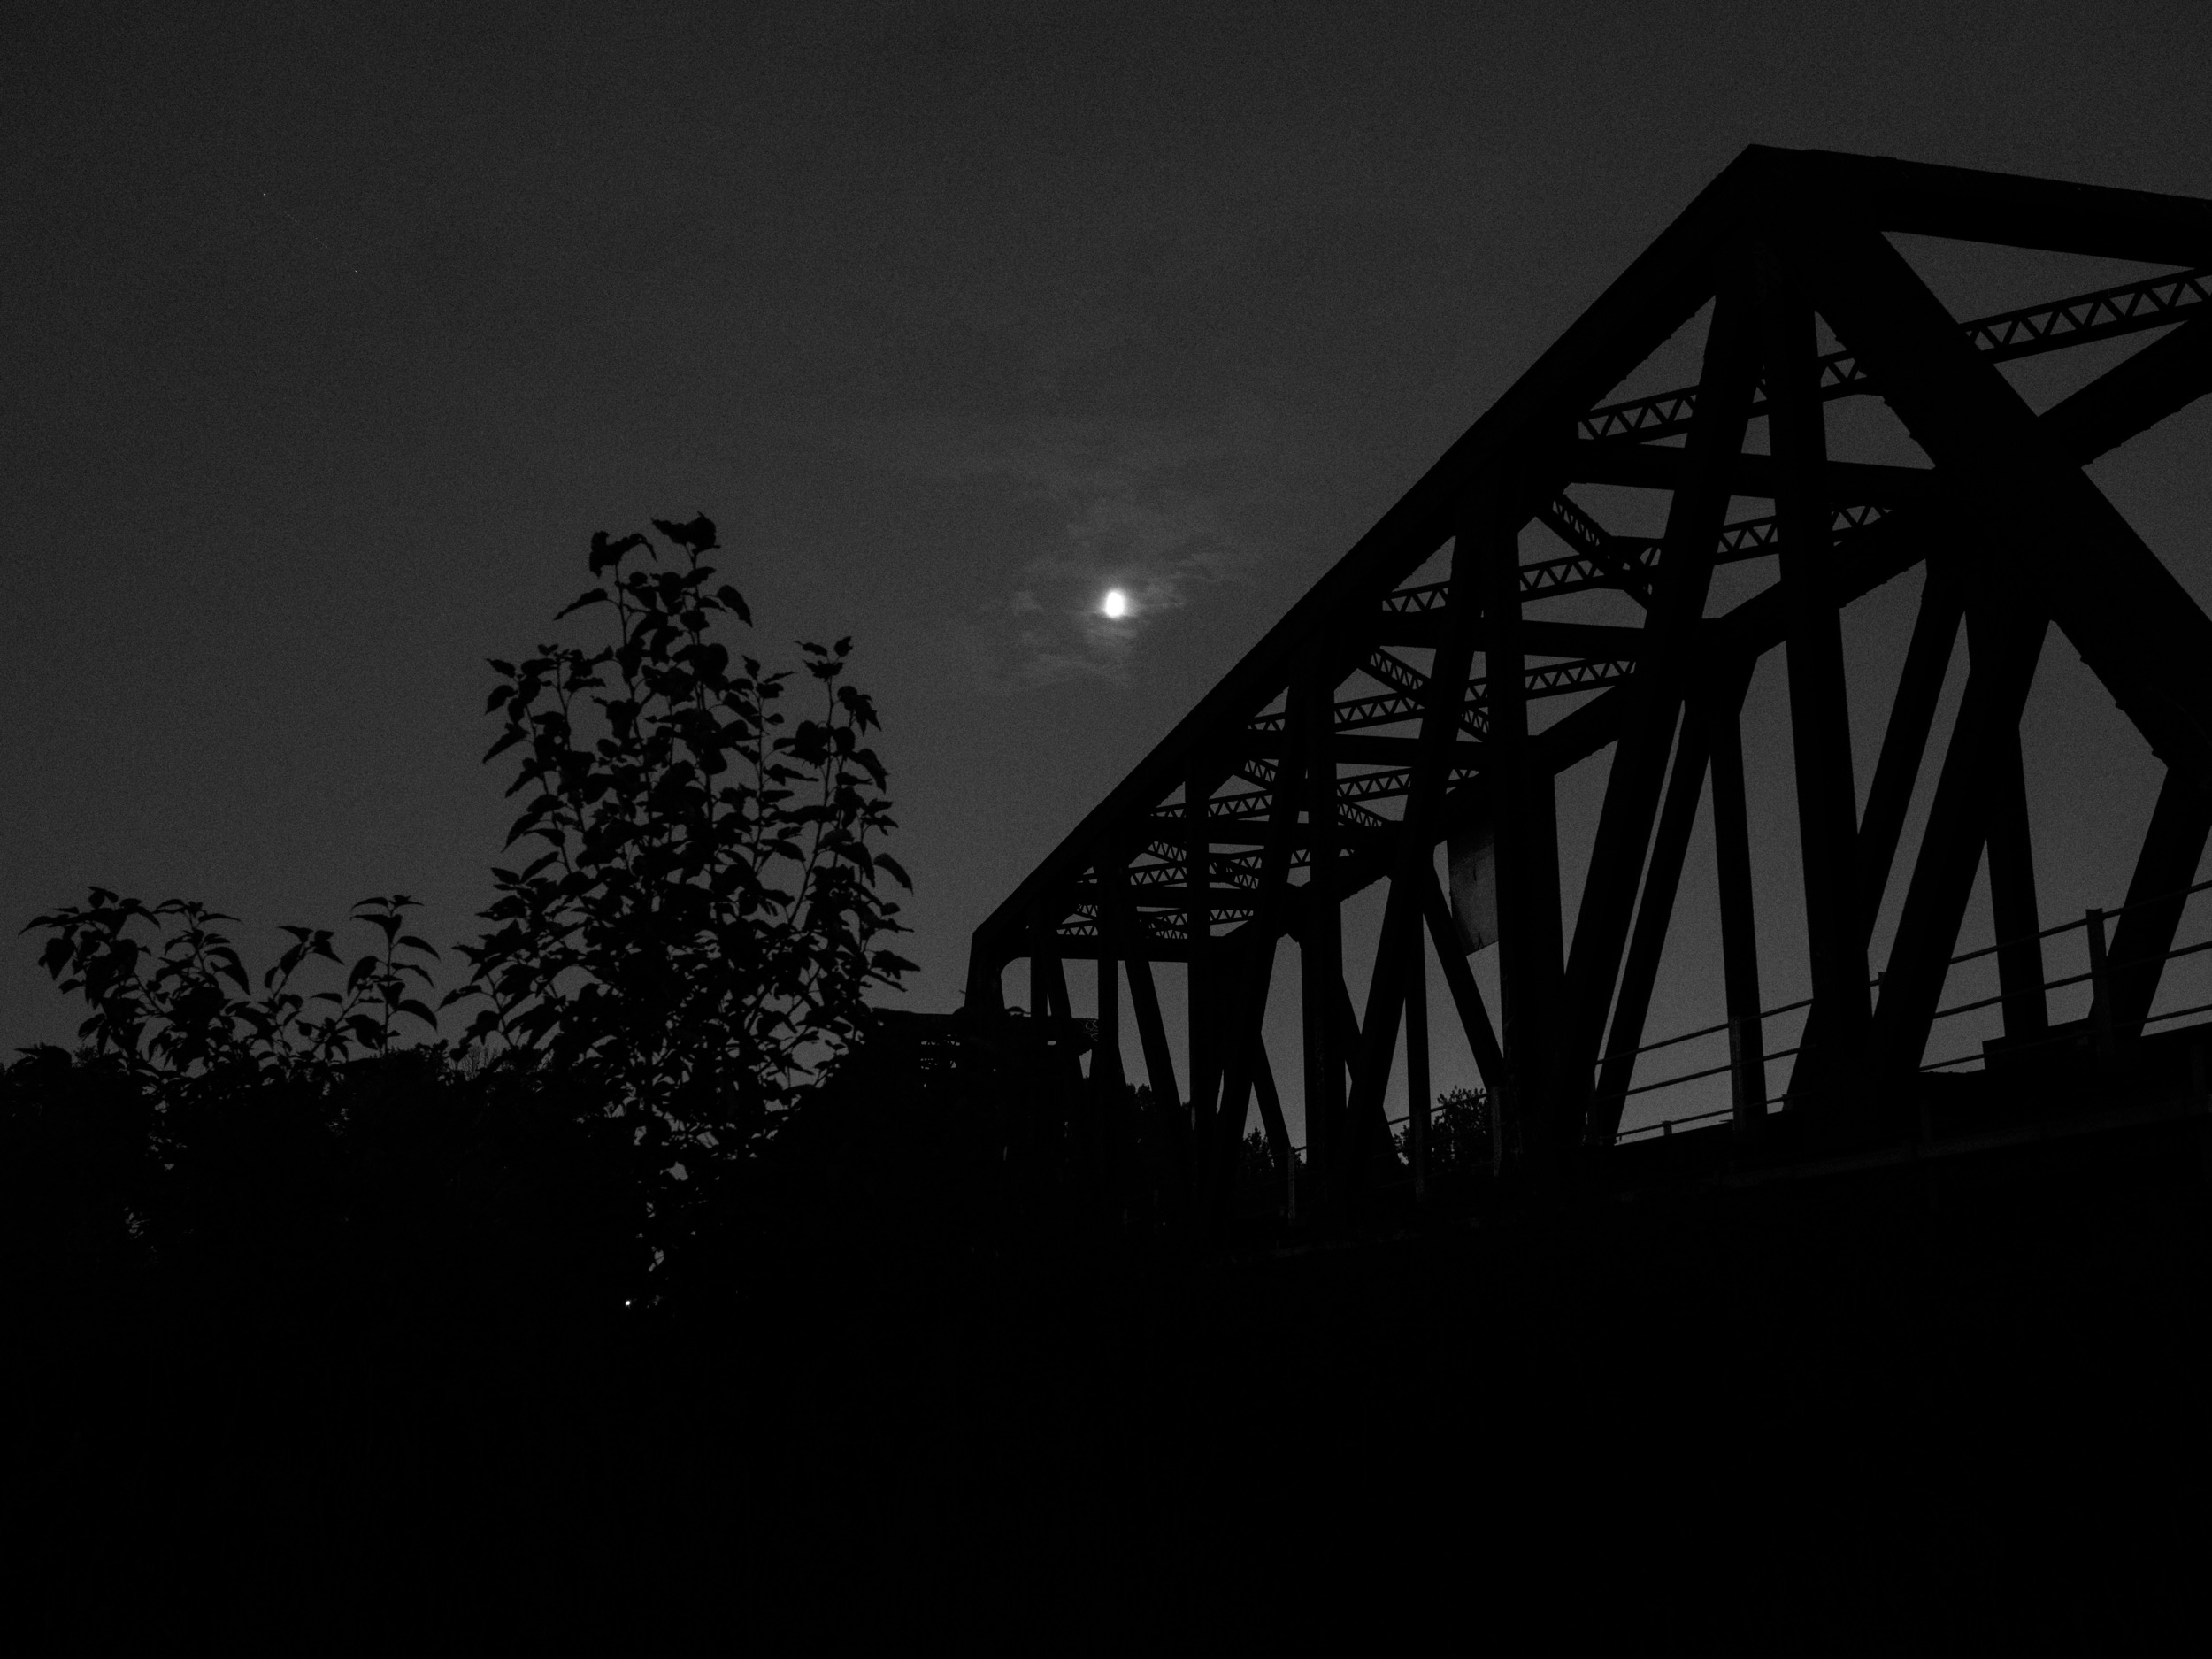 Bridge silhouette. Also using a tripod at night.